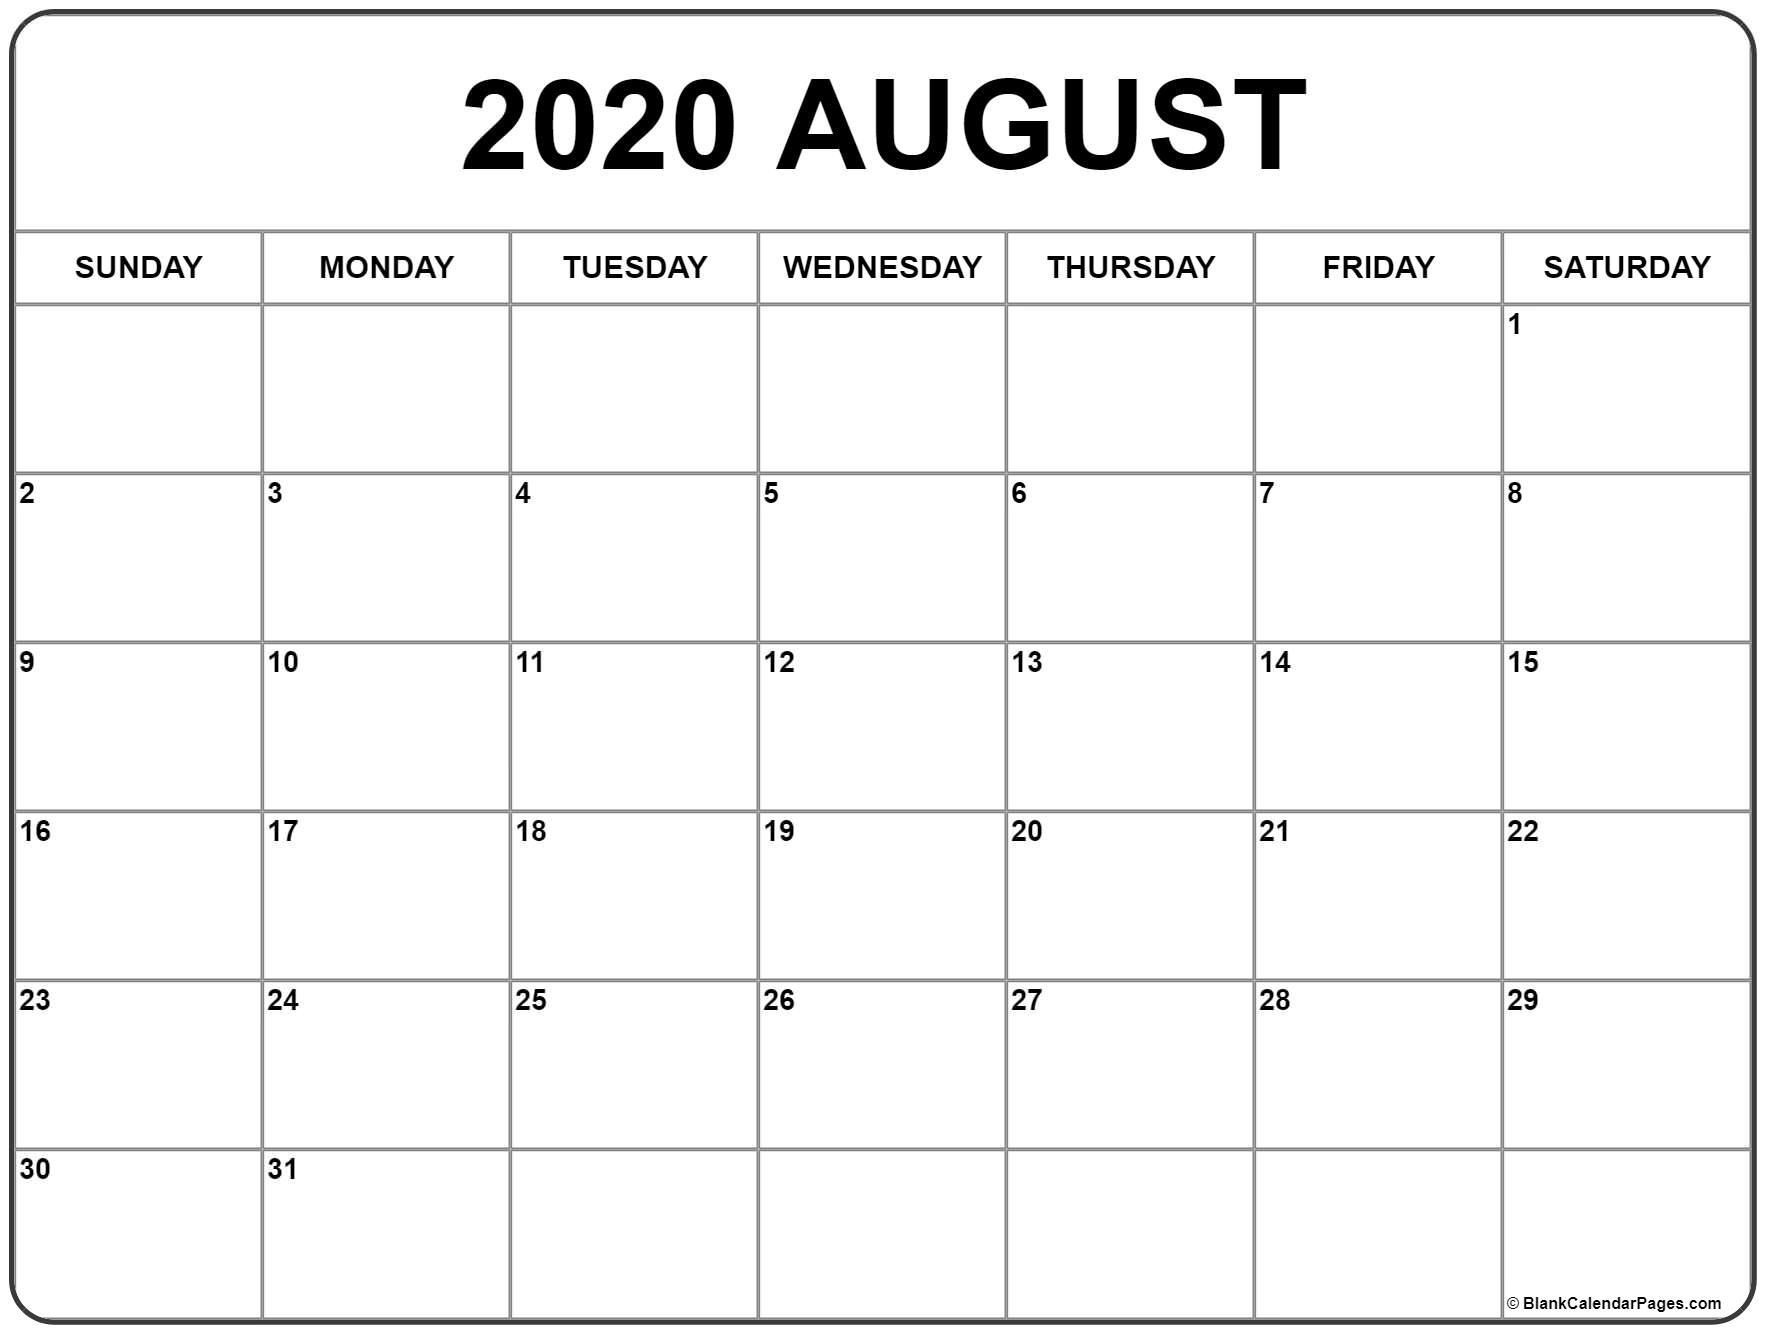 august 2020 calendar | free printable monthly calendars